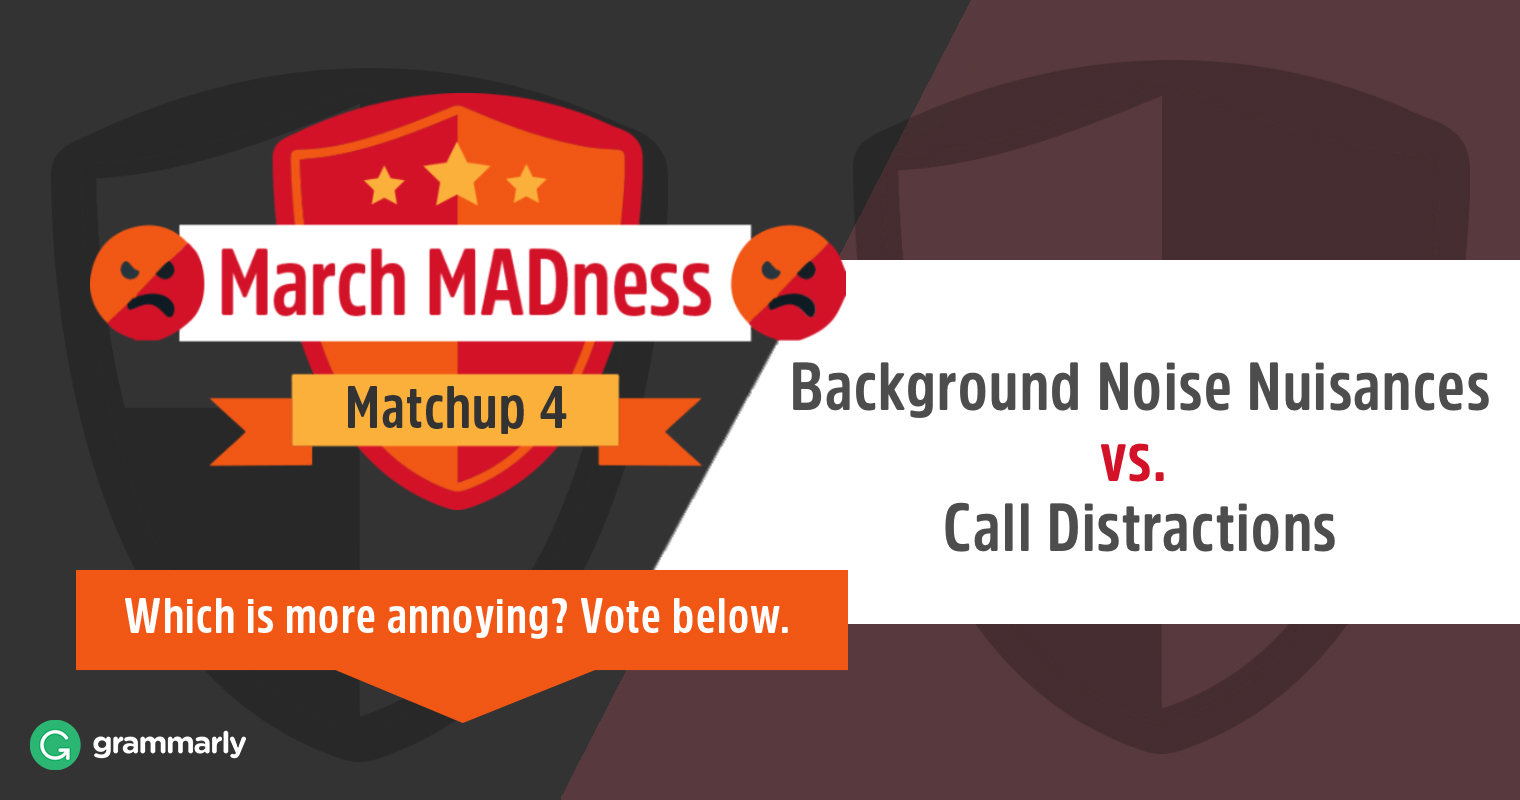 March MADness: Background Noise Nuisances vs. Call Distractions image